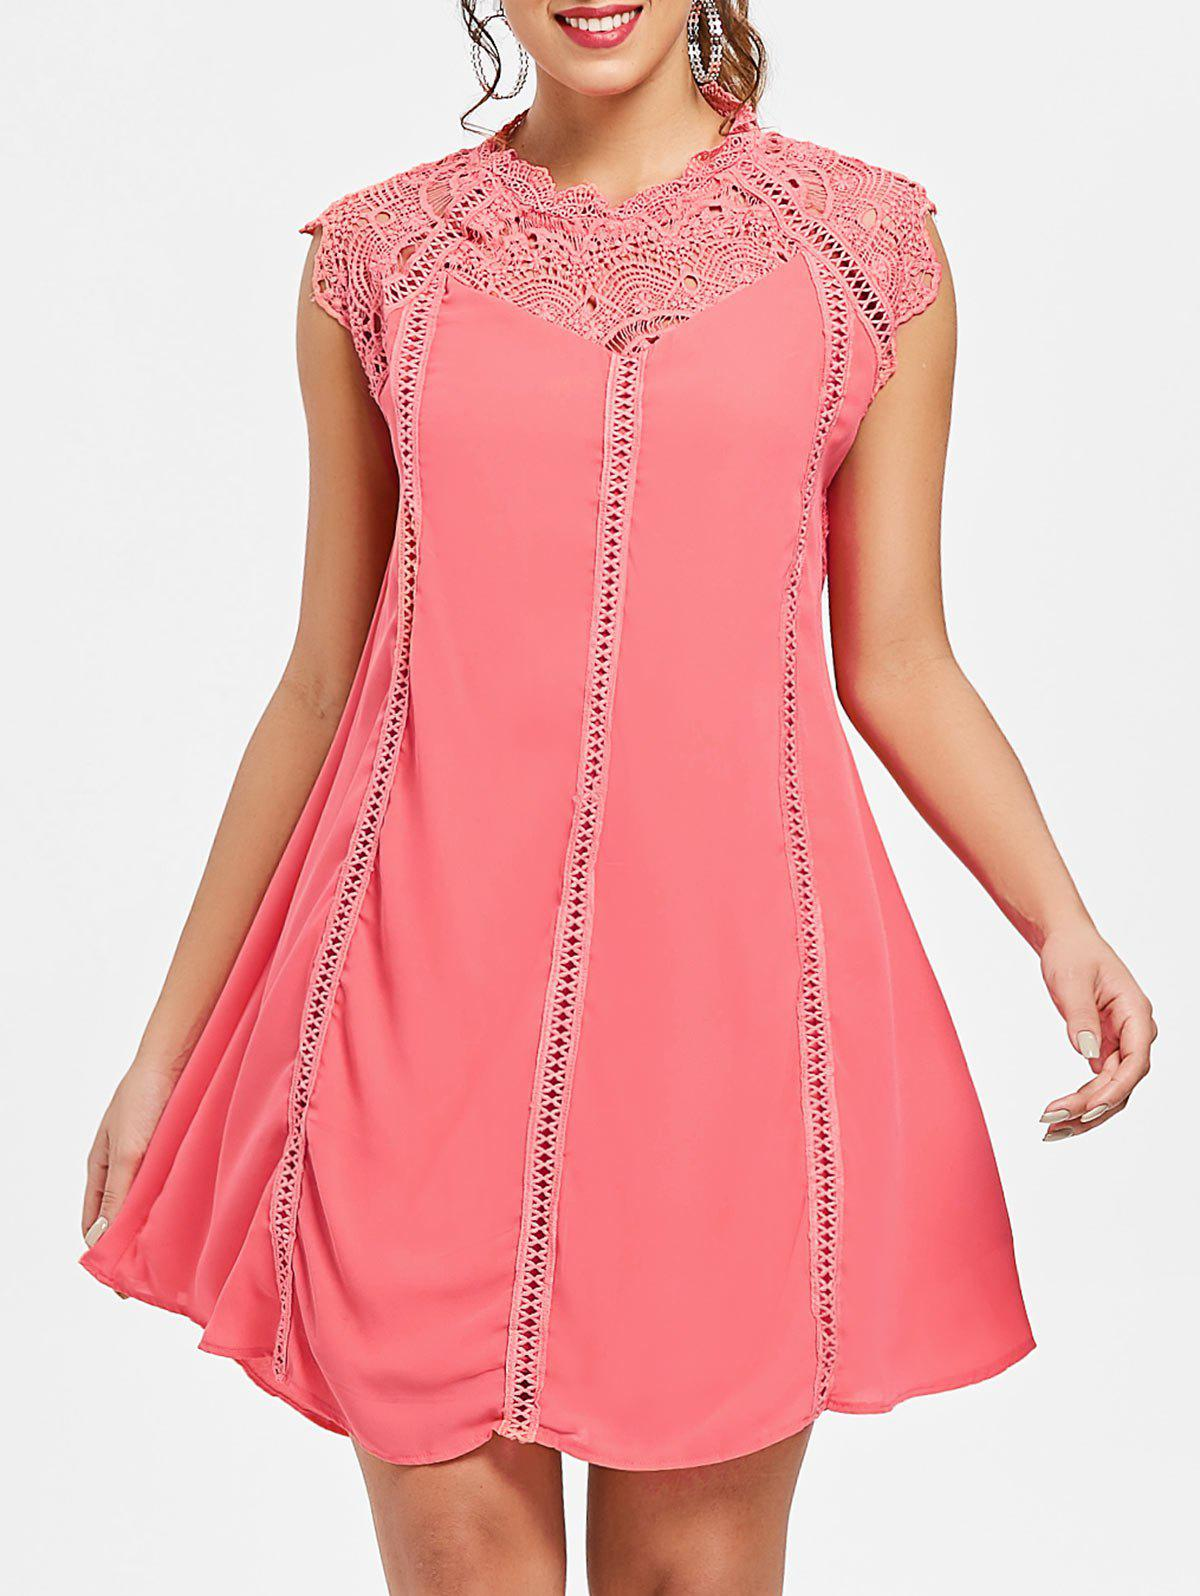 Lace Panel Mini Tent Dress - WATERMELON PINK M